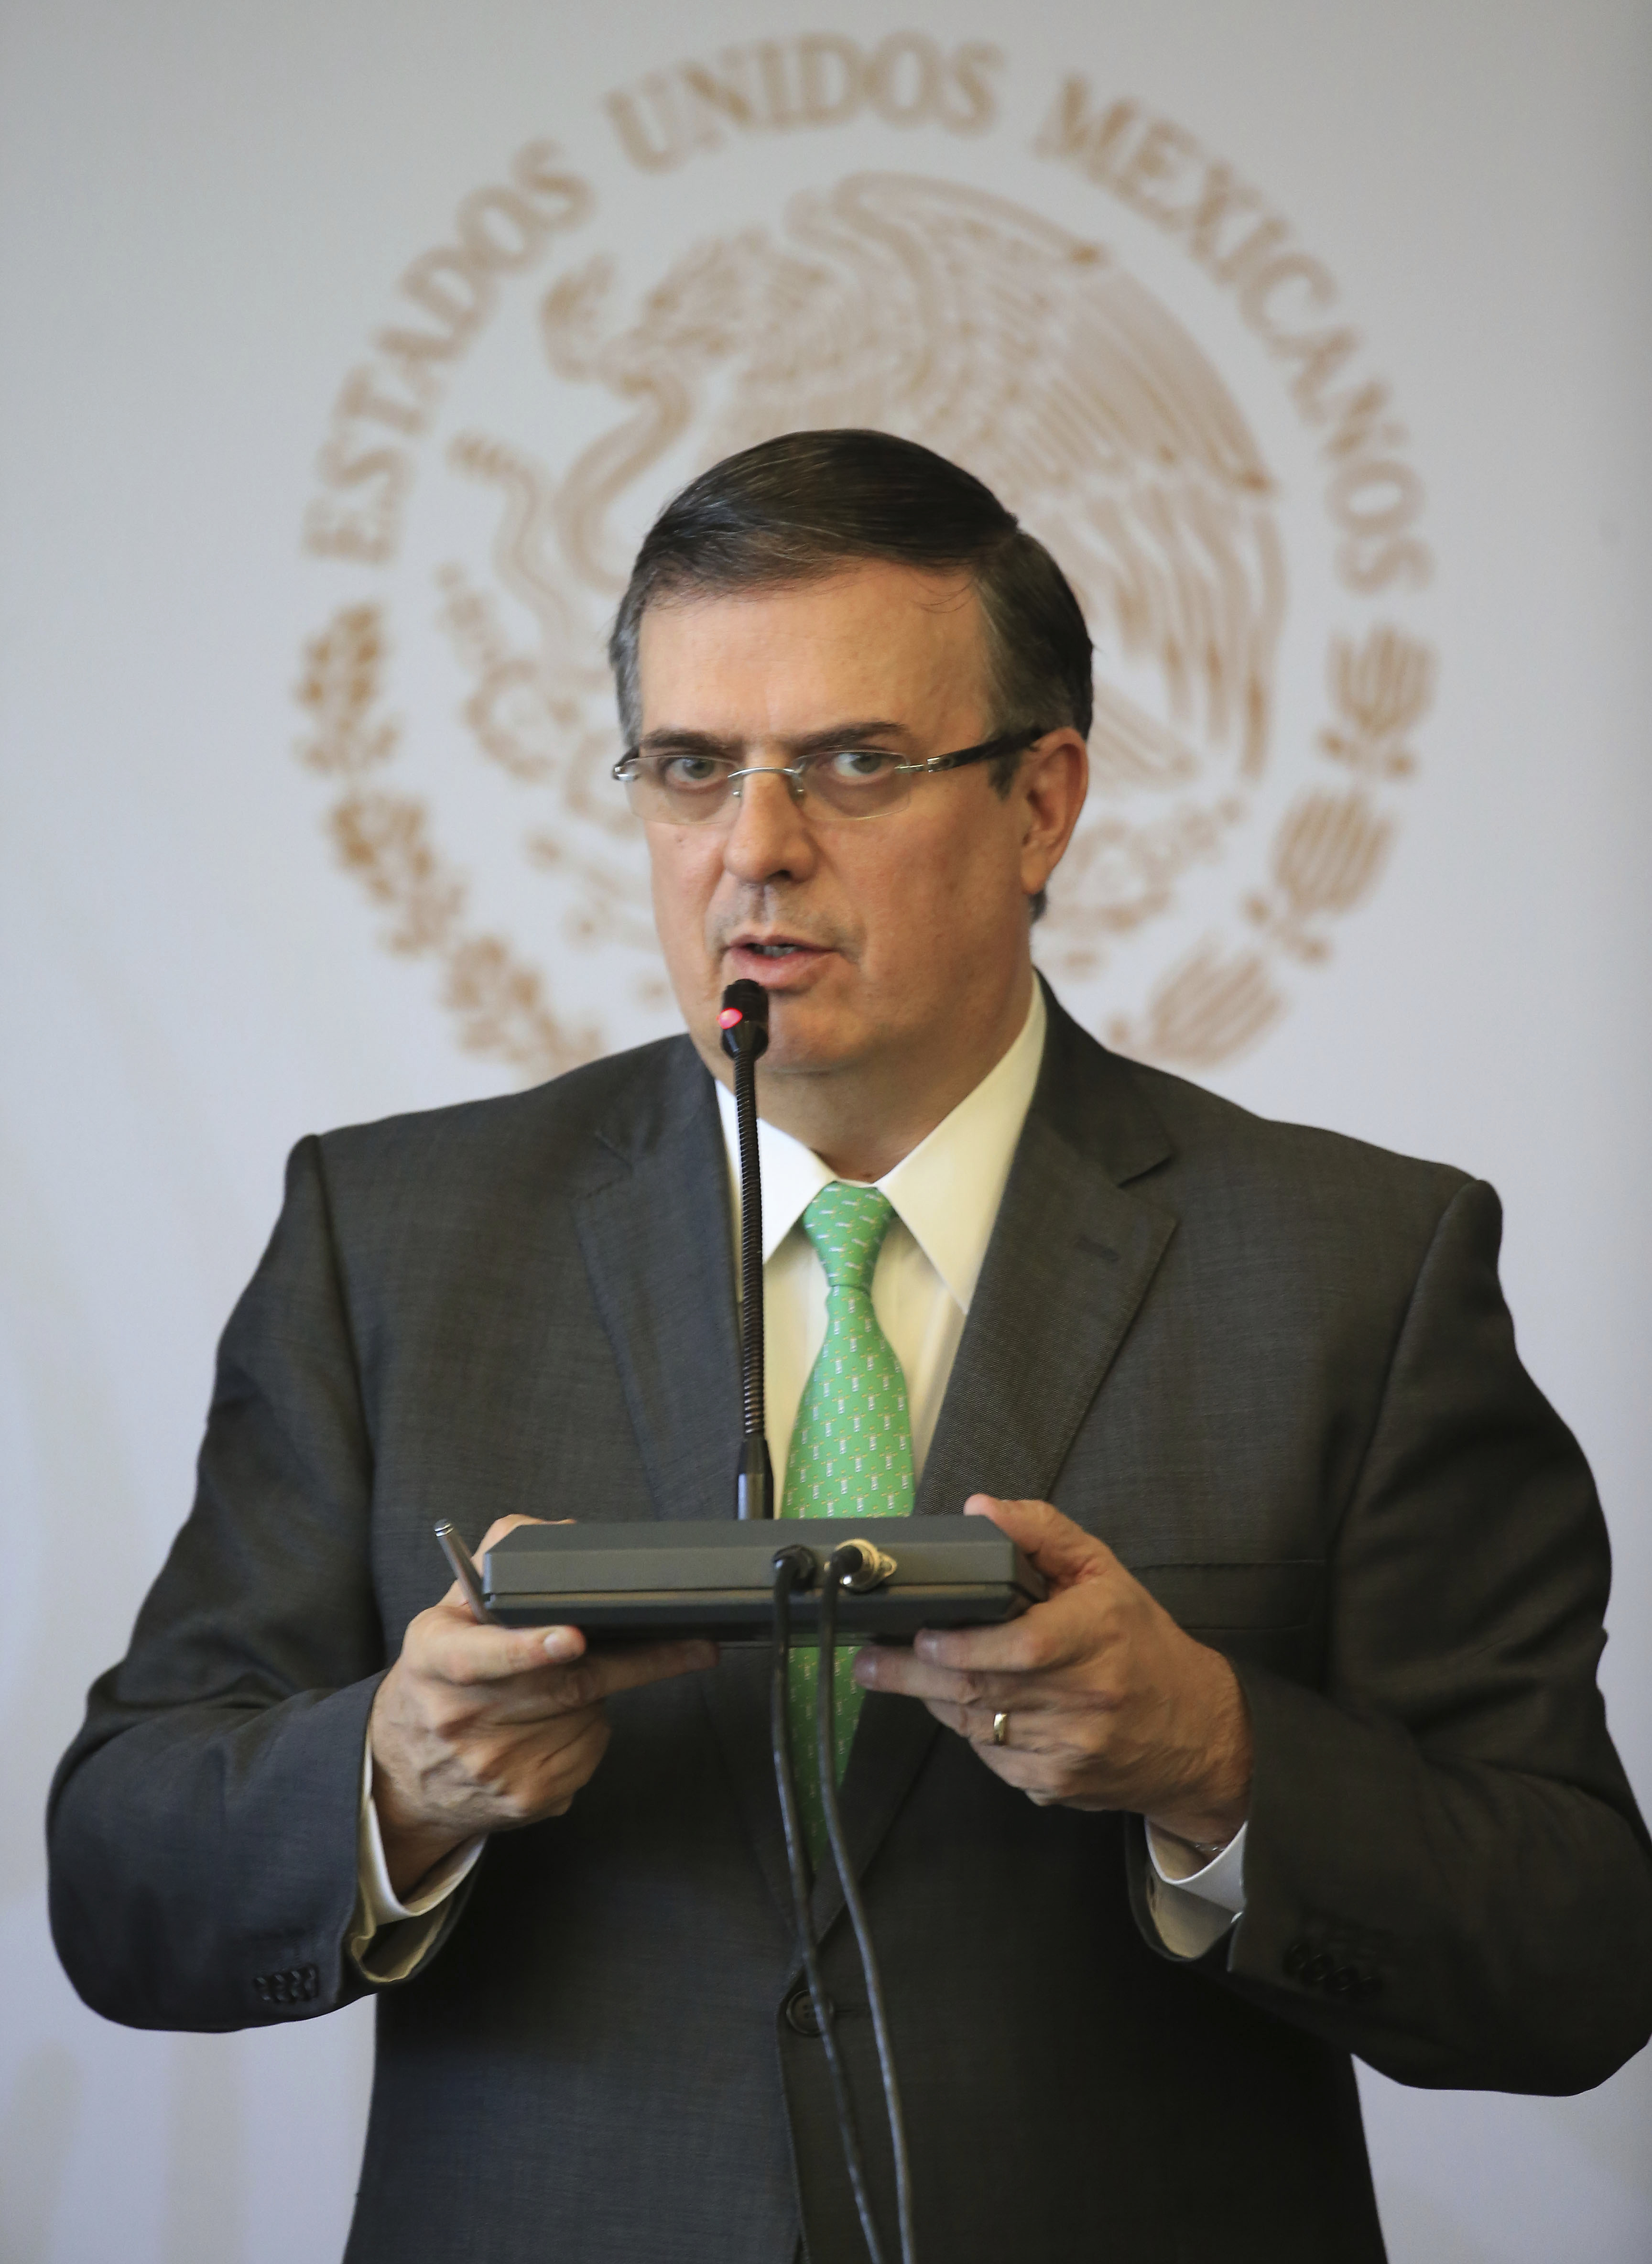 Mexico, US to launch plan against arms smuggling at border